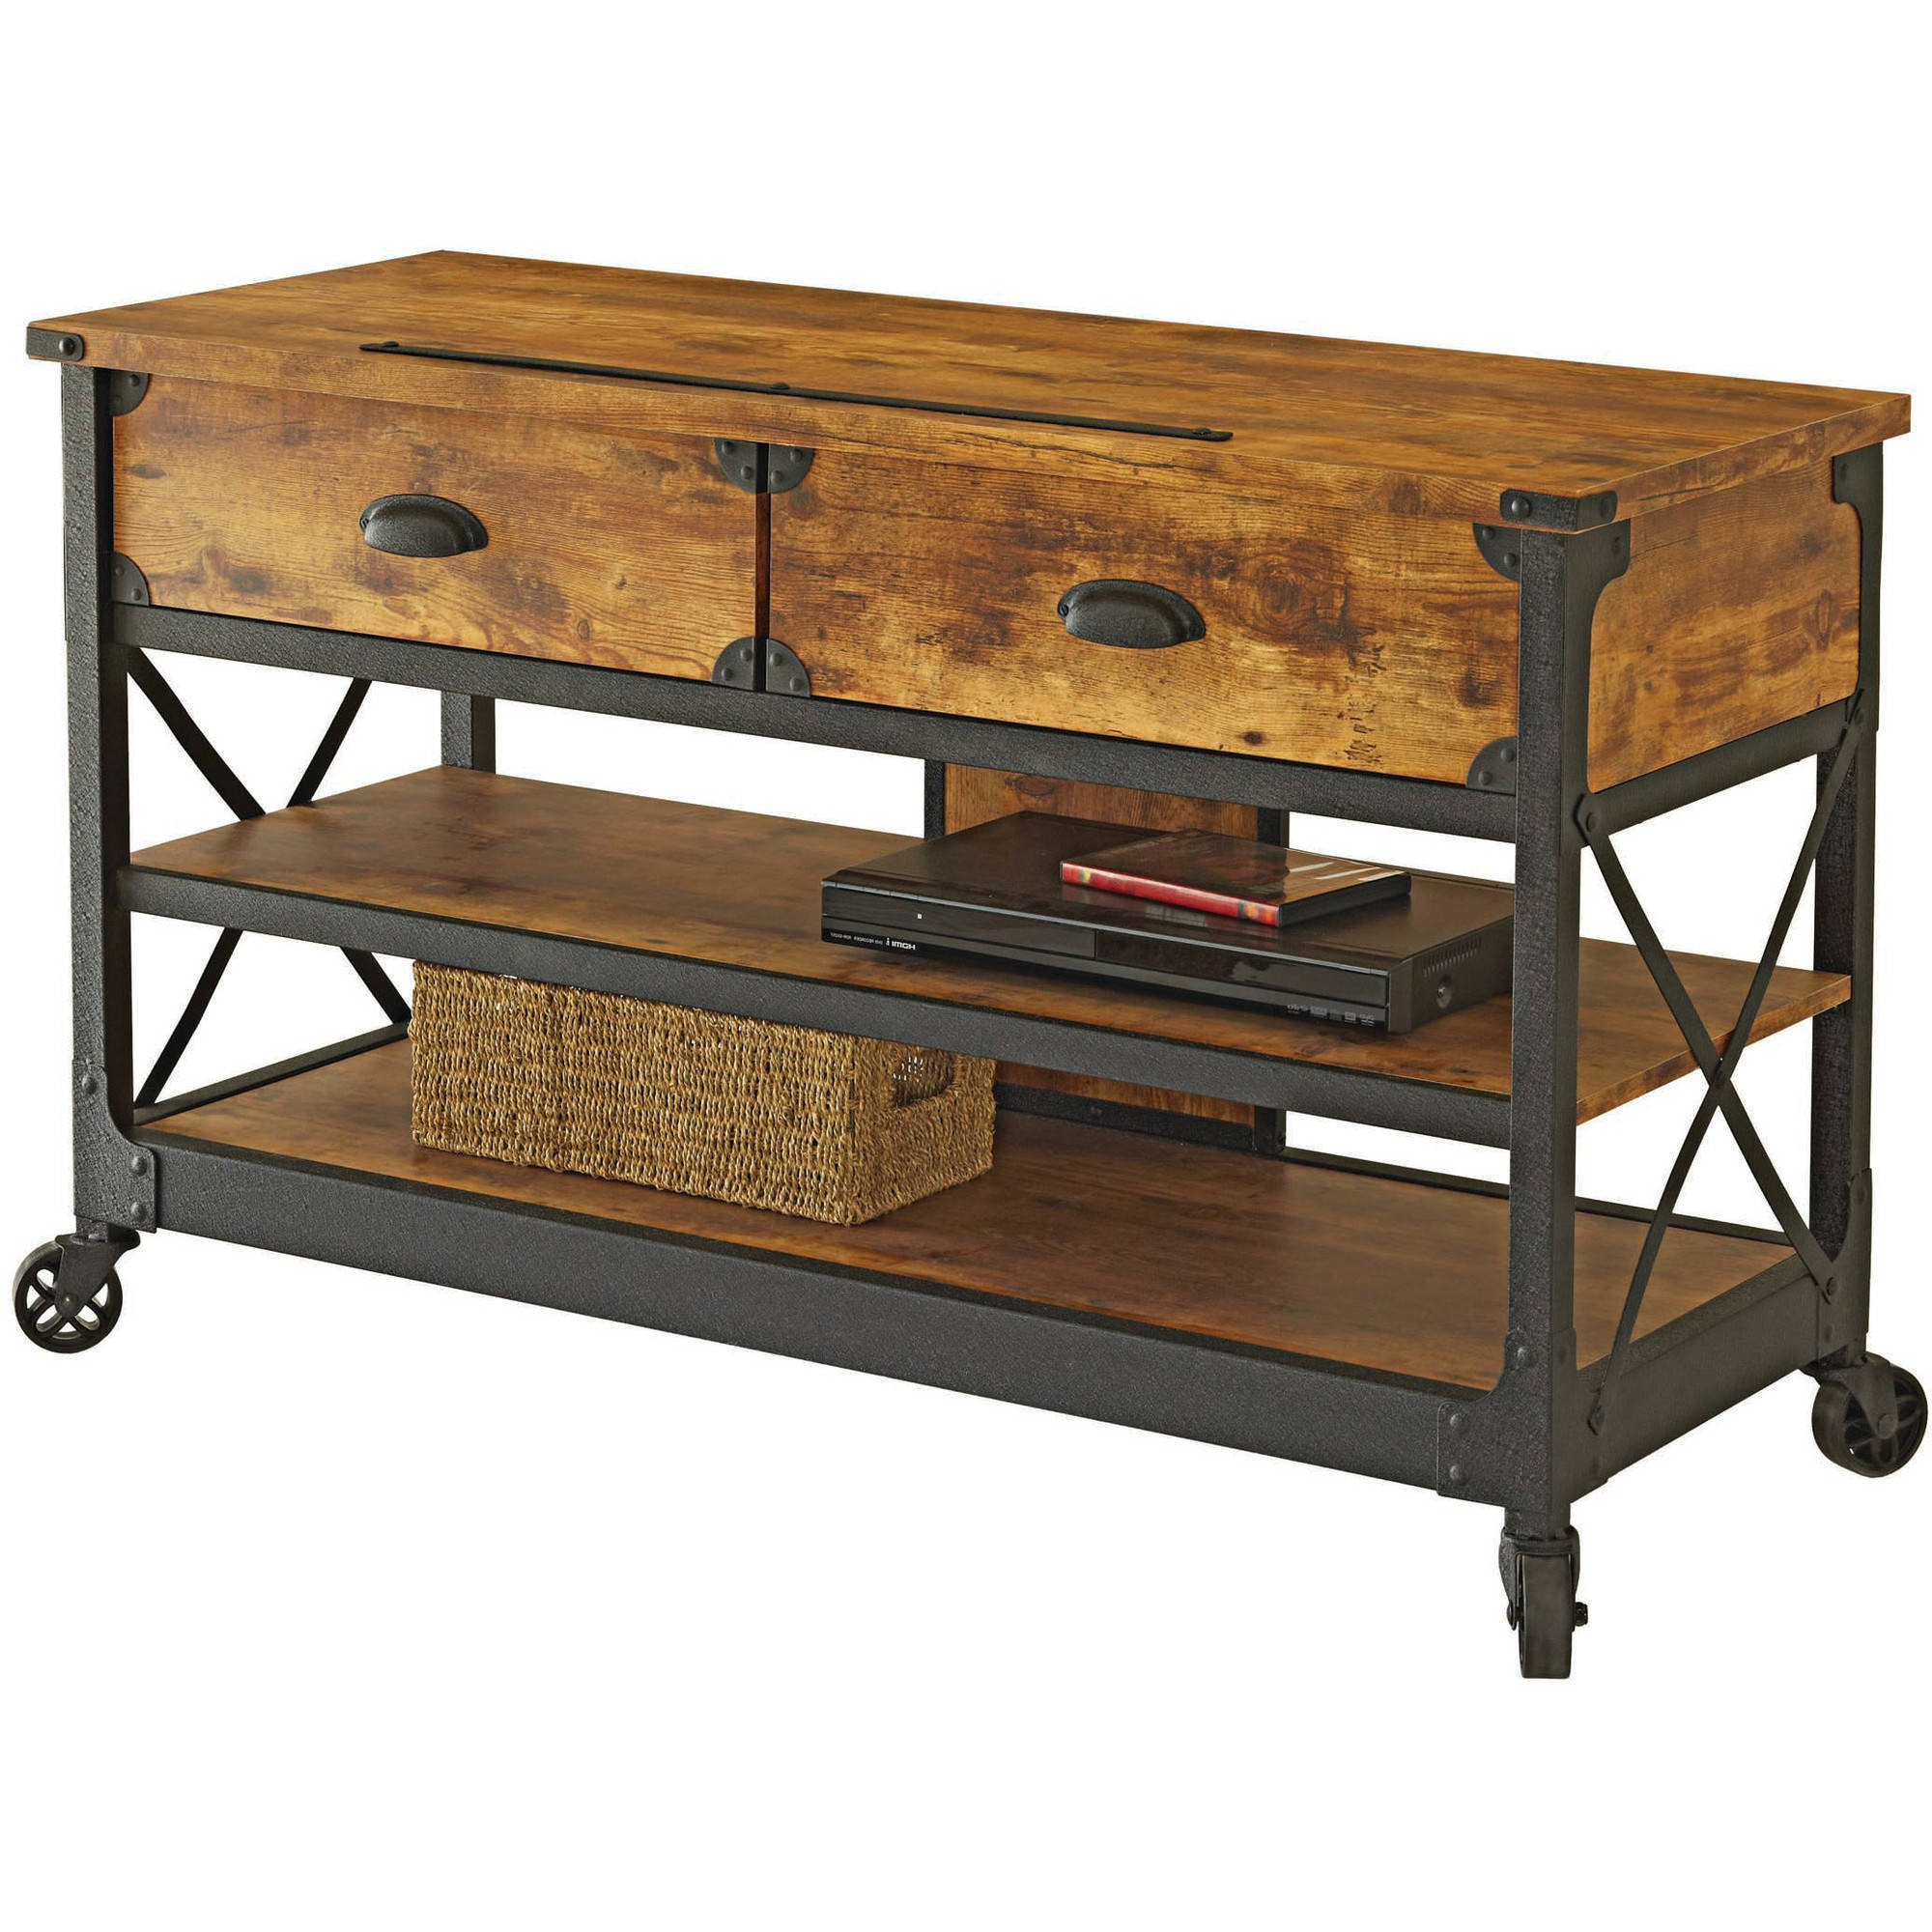 Better Homes & Gardens Rustic Country Tv Stand For Tvs Up To 52 With Most Recent Rustic Wood Tv Cabinets (View 3 of 20)